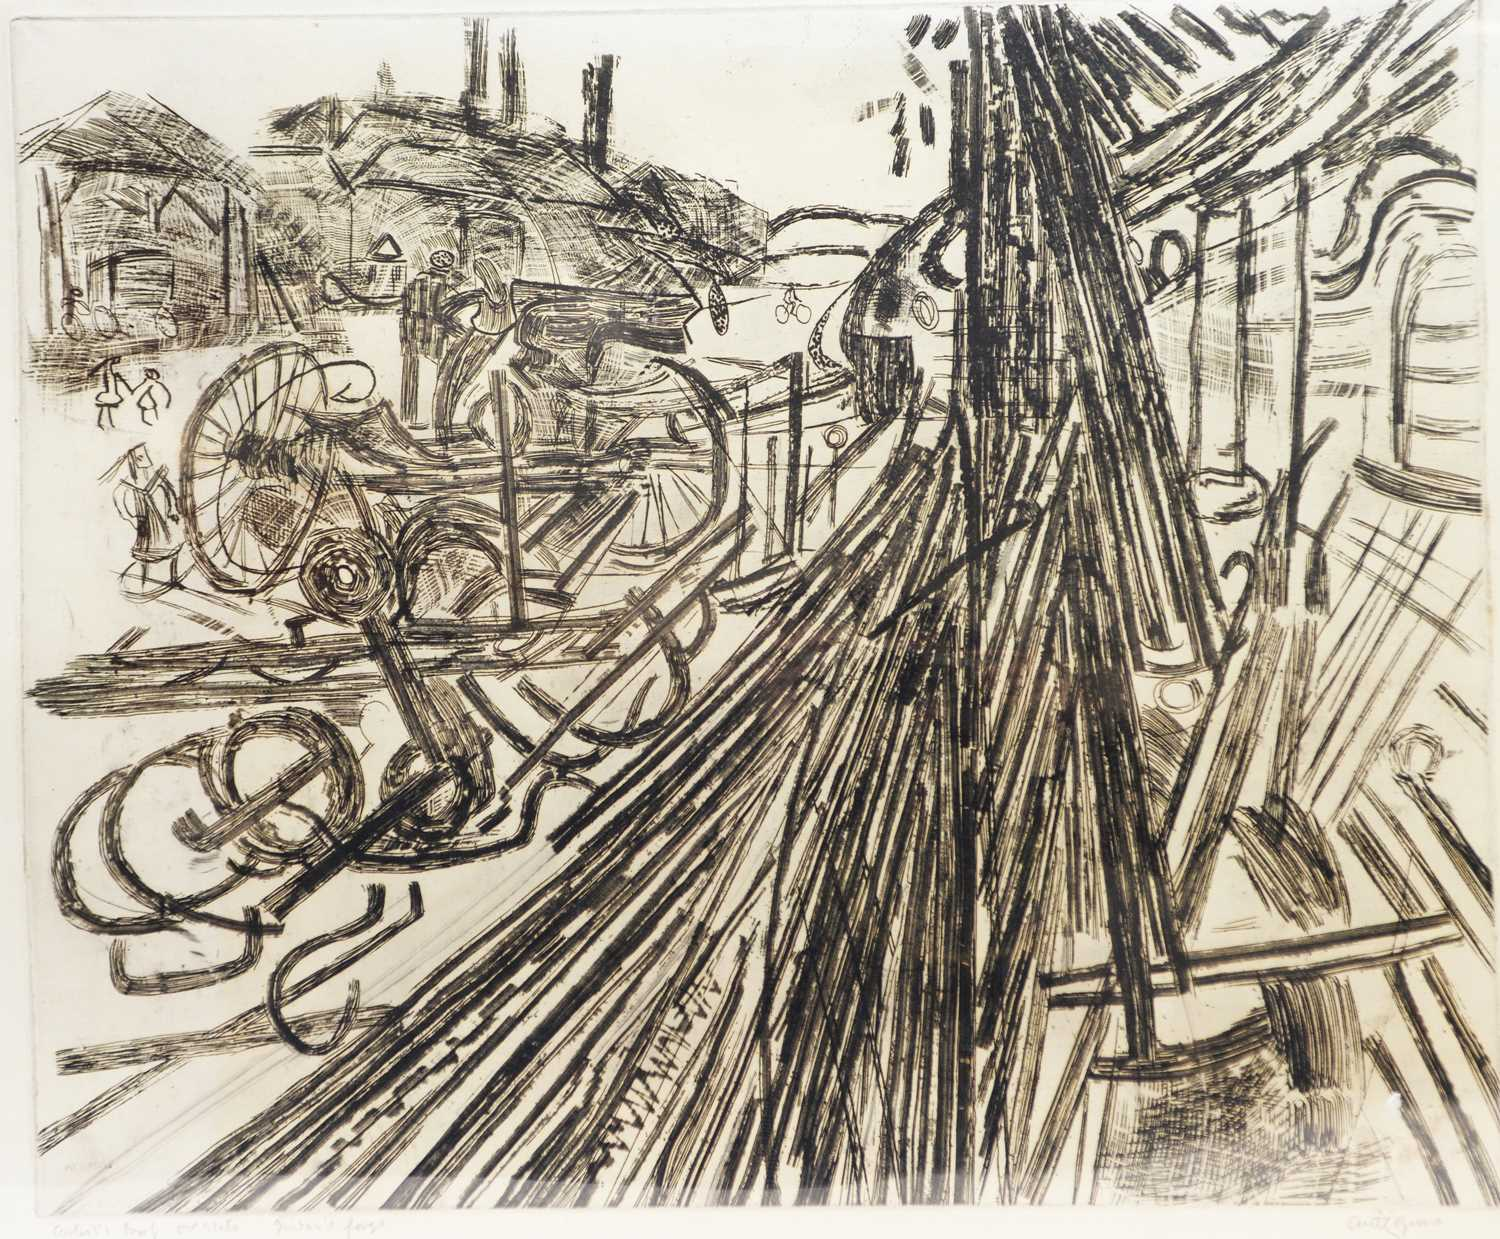 Lot 296 - Anthony Gross - etching.